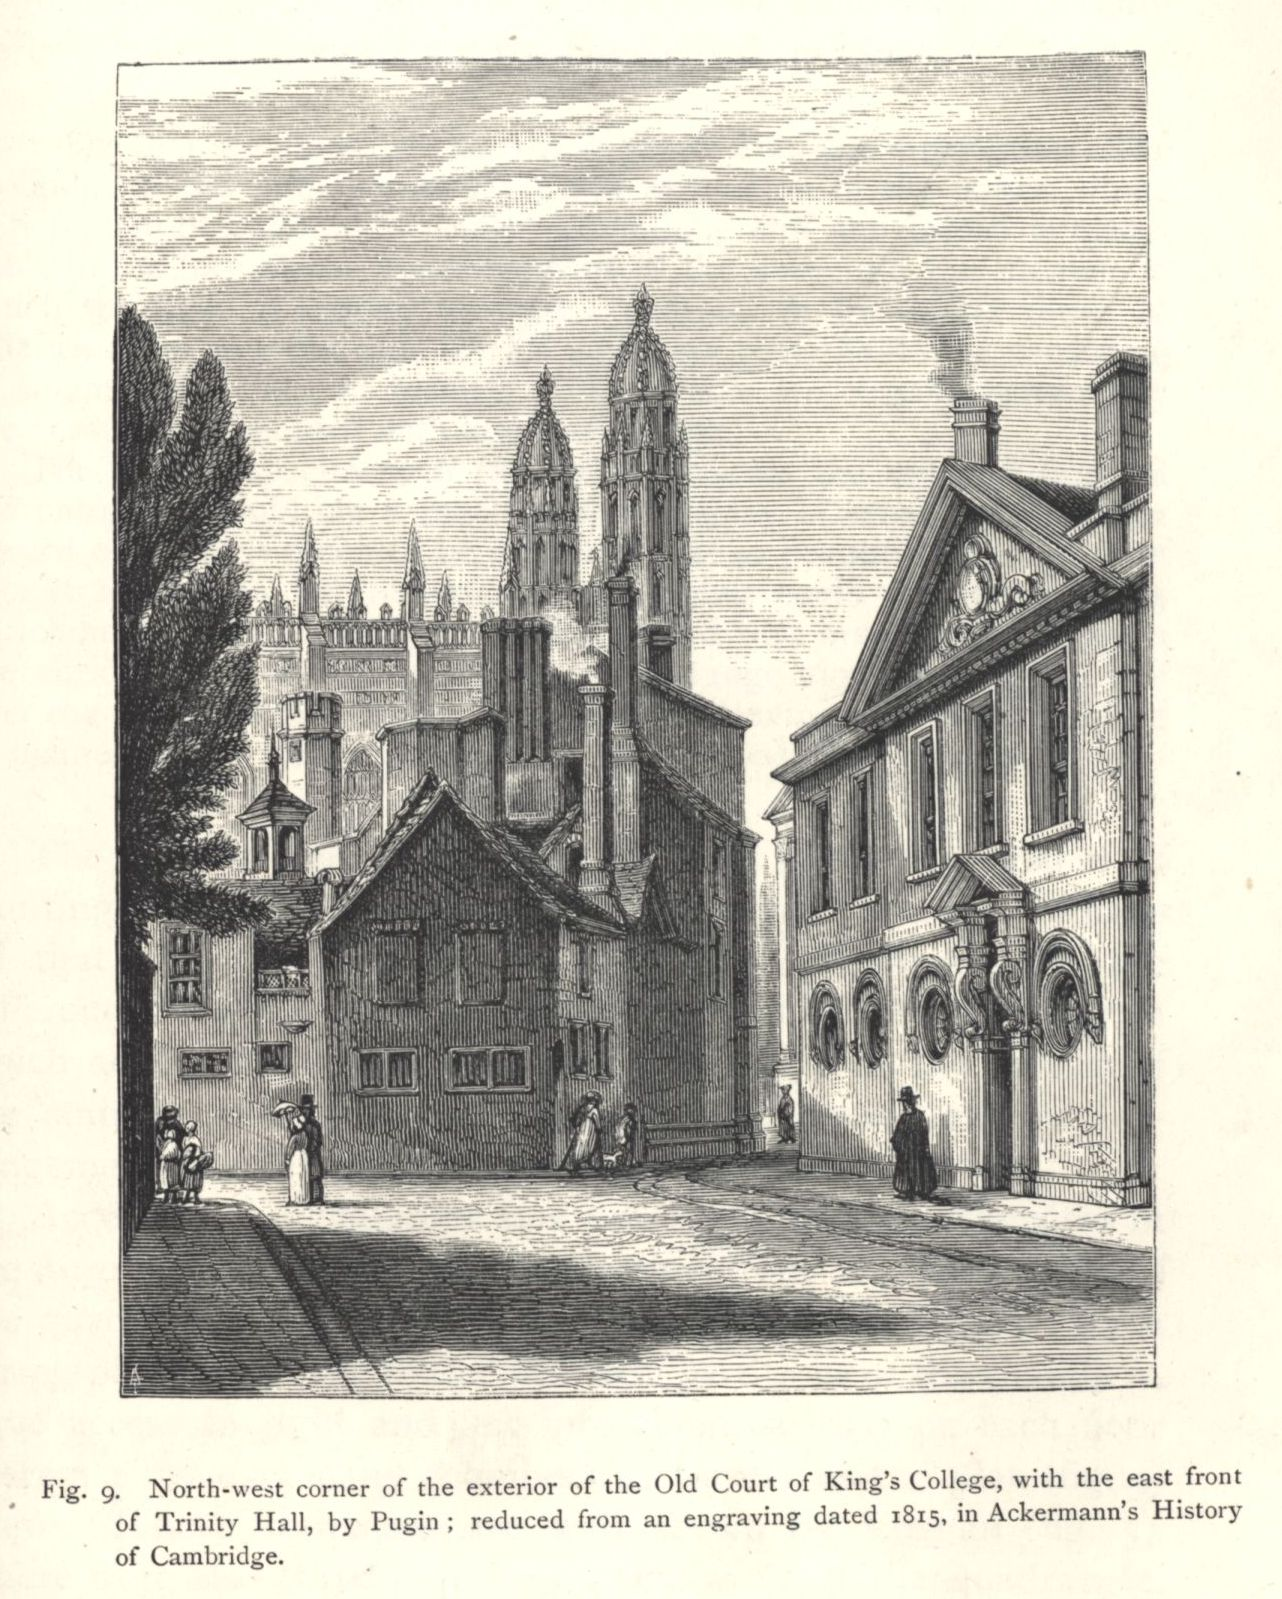 North-west corner of the exterior of the Old Court, with the East Front of Trinity Hall, by Pugin, reduced from an engraving dated 1815 in Ackermann's History of Cambridge. [Willis and Clark, vol. 1, p. 326, fig. 9]